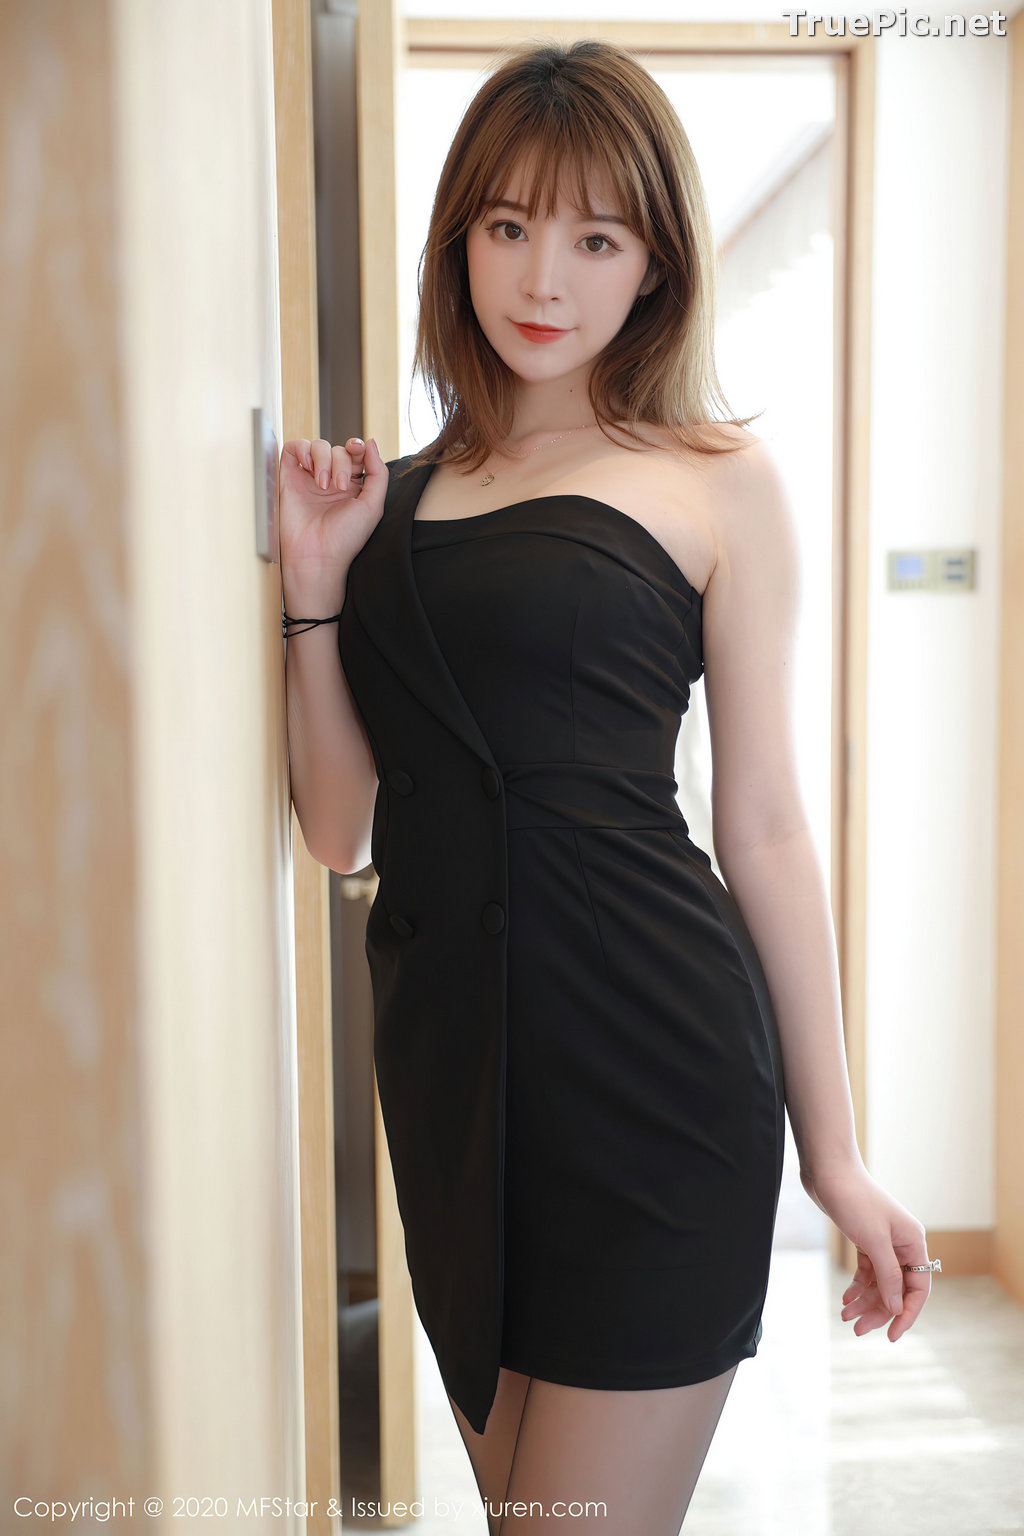 Image MFStar Vol.405 - Chinese Model - Yoo优优 - Hot Woman in Black - TruePic.net - Picture-2